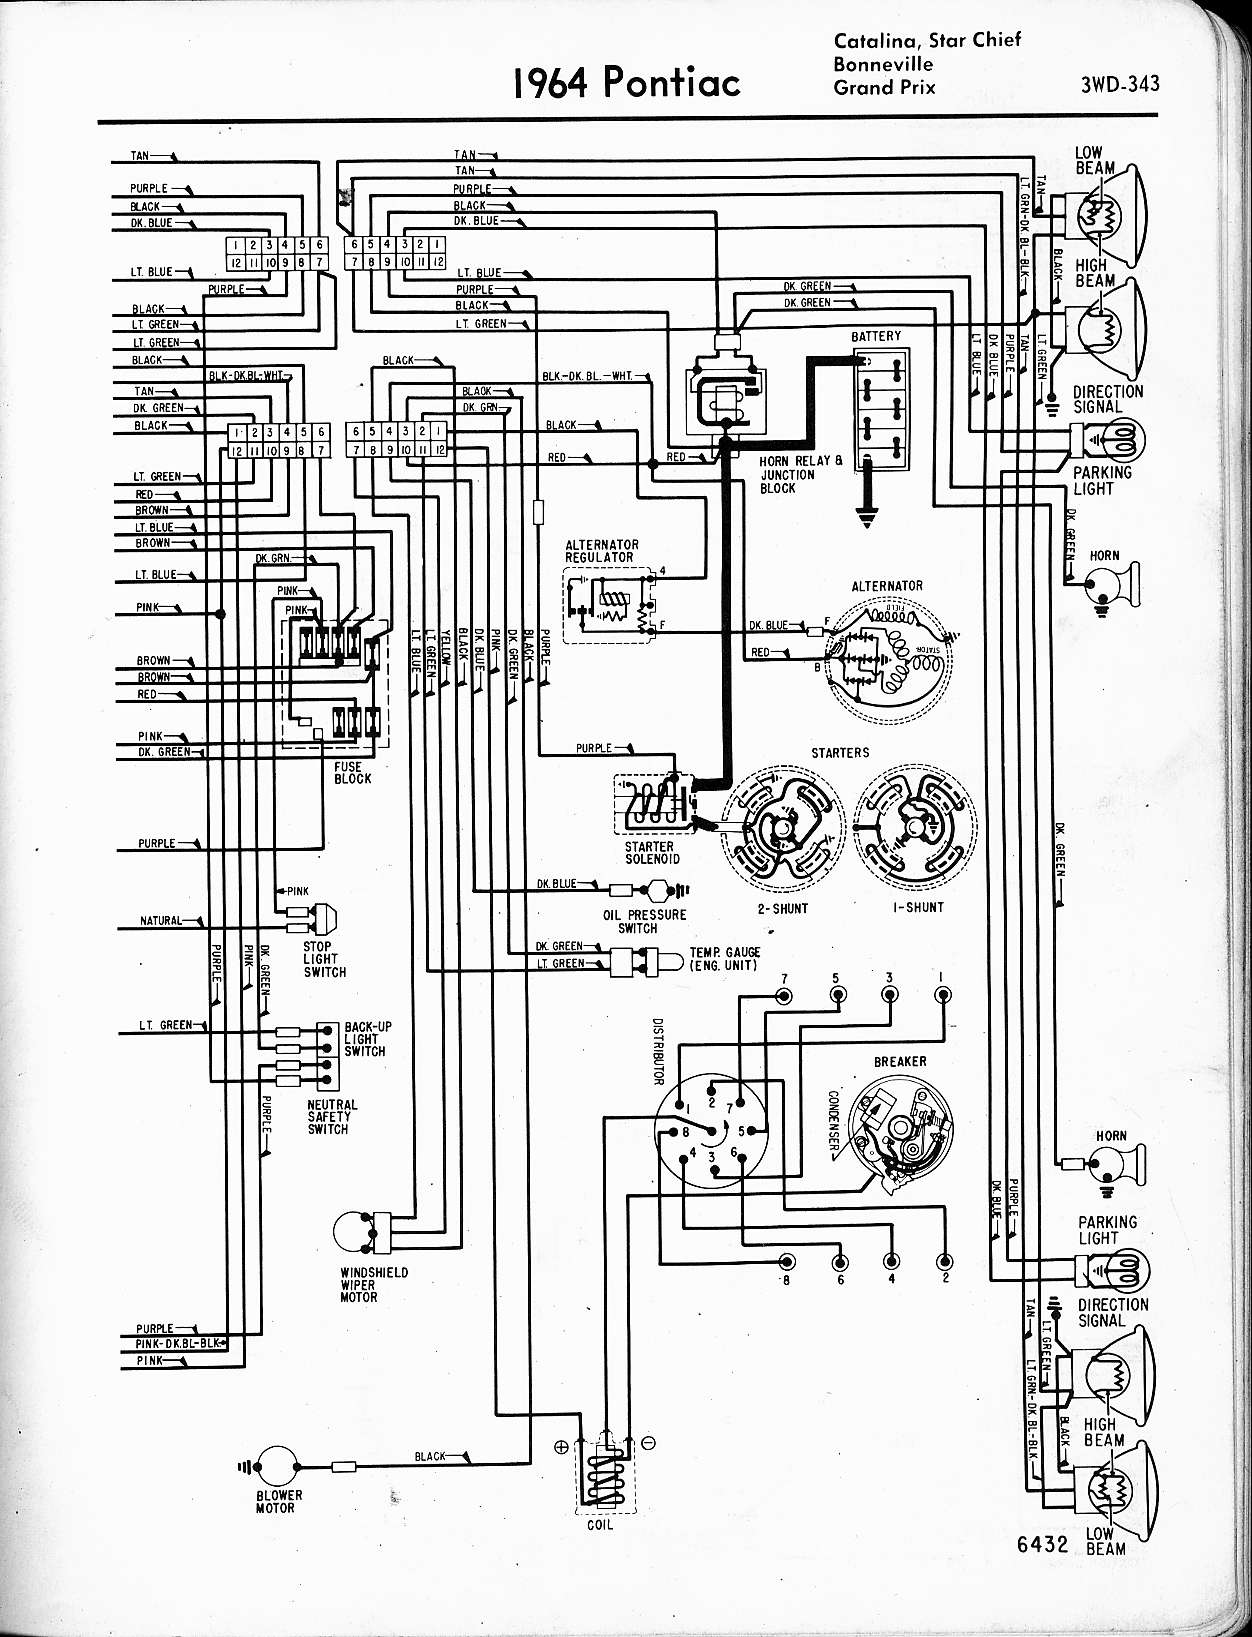 wallace racing wiring diagrams 1997 Pontiac Grand Prix Engine Diagram 1964 catalina, star chief, bonneville, grand prix, right page Pontiac Grand Prix Engine Diagram